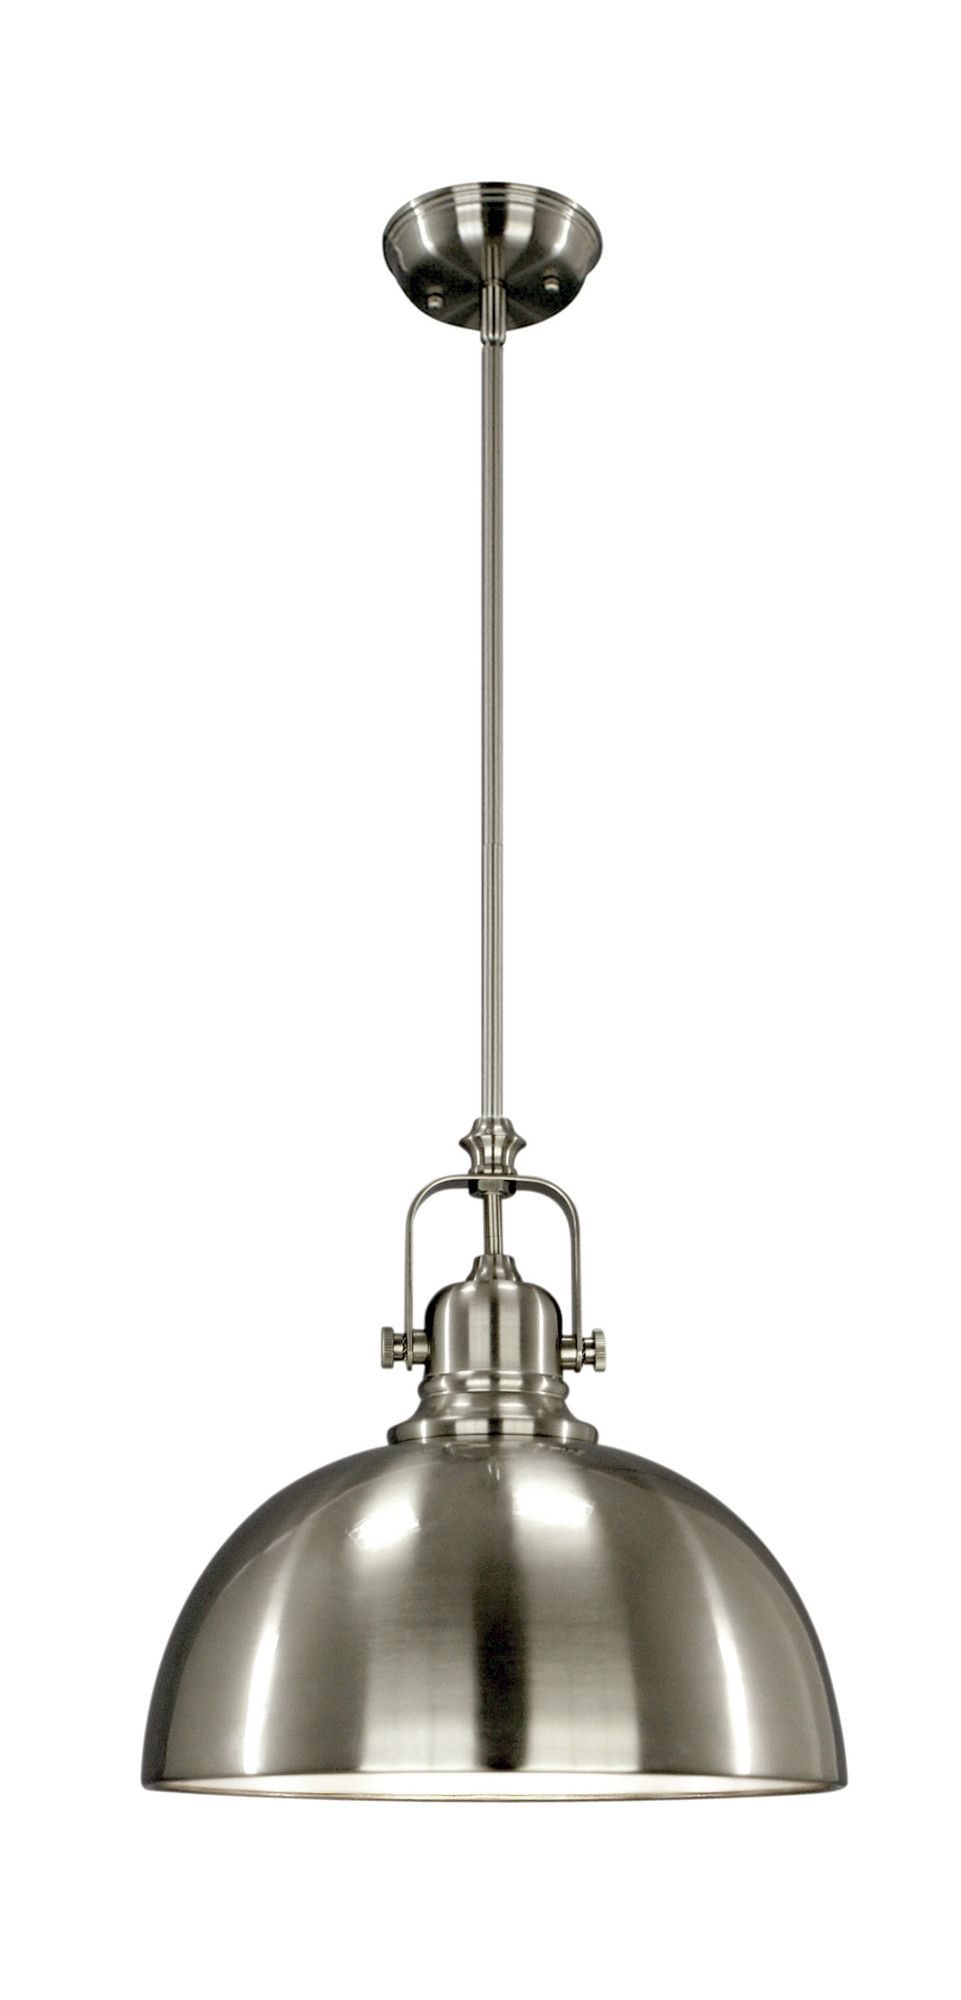 Industrial pendant light fixture in brushed nickel or bronze